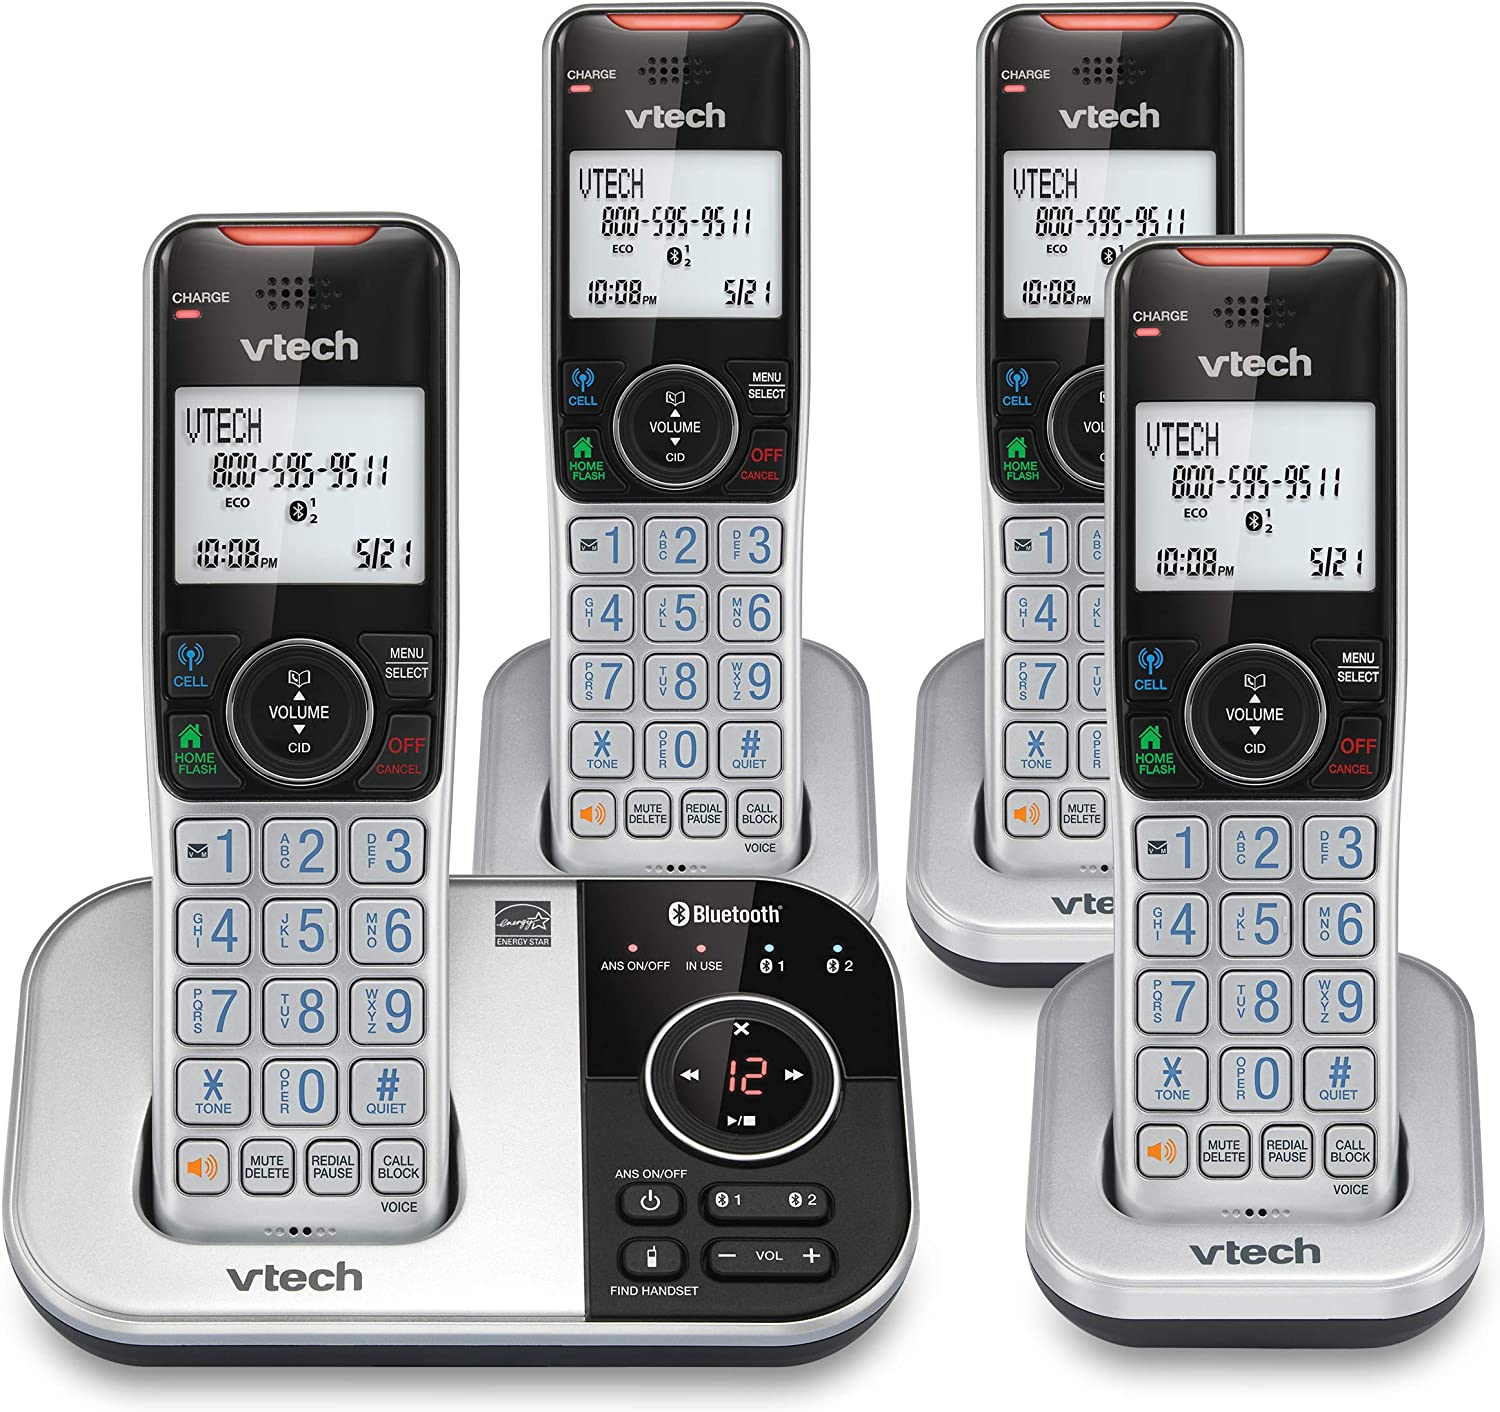 VTECH VS112-4 DECT 6.0 Bluetooth 4 Handset Cordless Phone for Home with Answering Machine, Call Blocking, Caller ID, Intercom and Connect to Cell (Silver & Black)